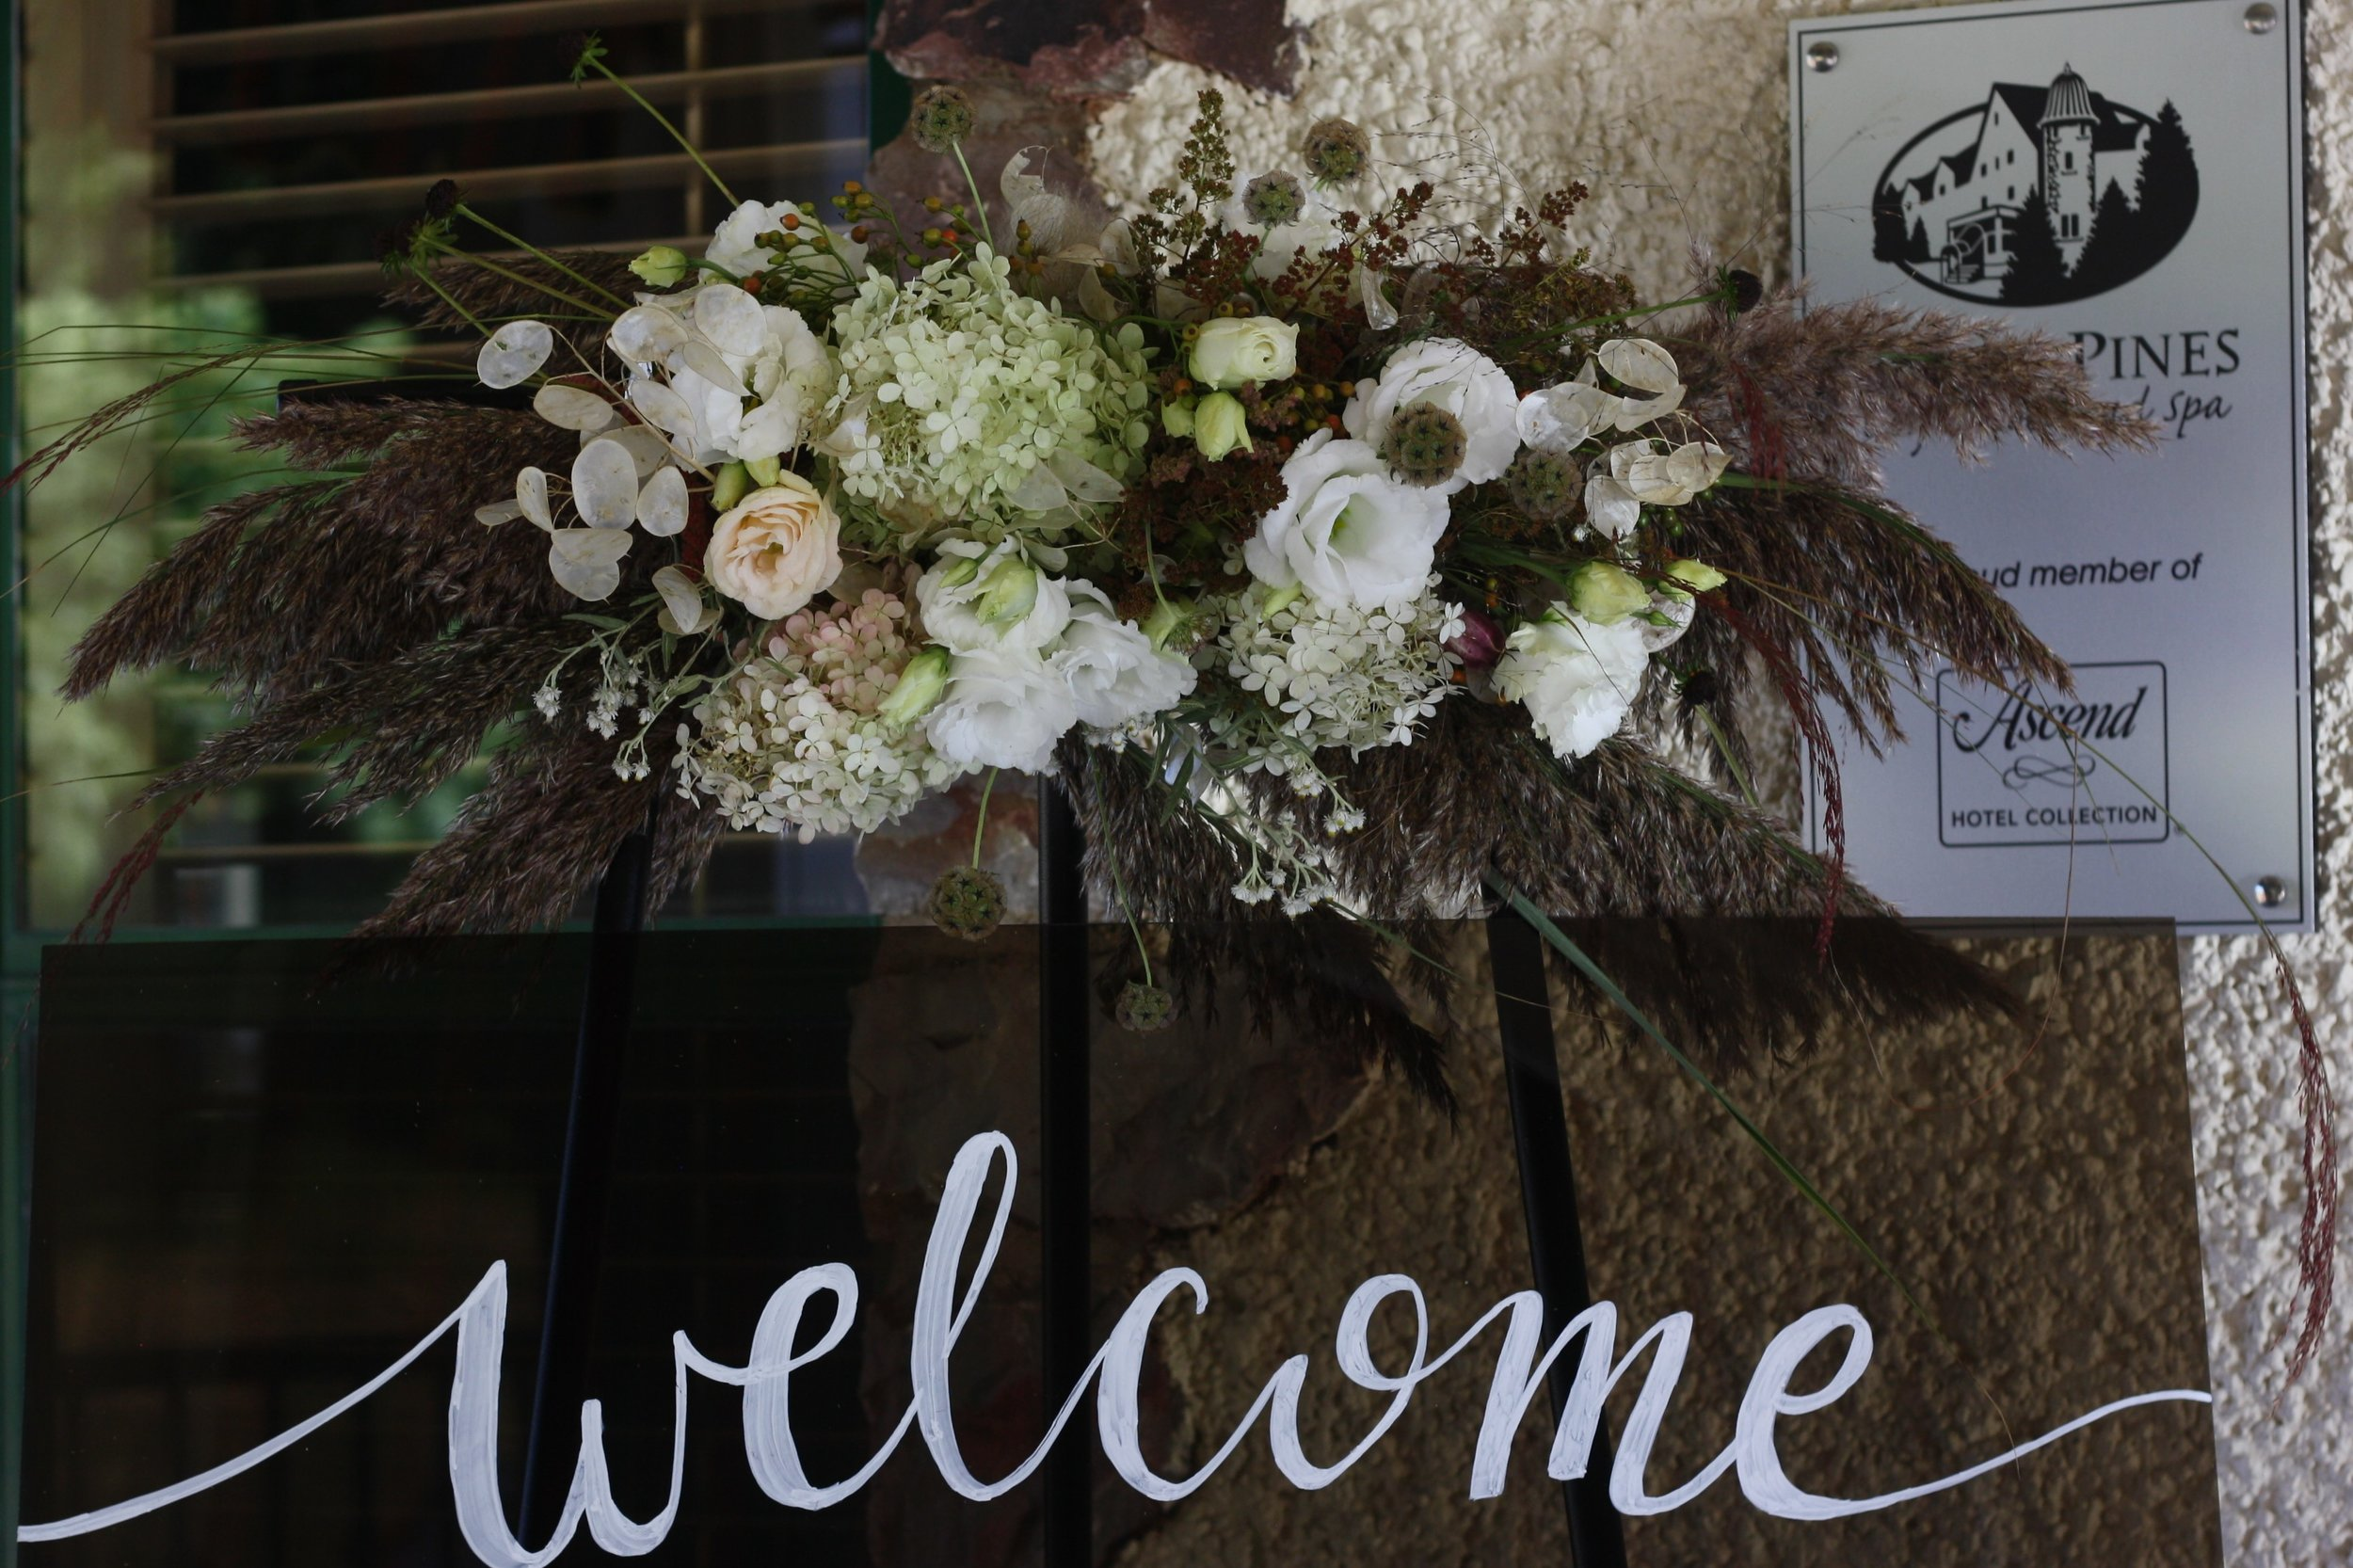 Wedding welcome sign at Digby Pines. 100% locally grown flowers.